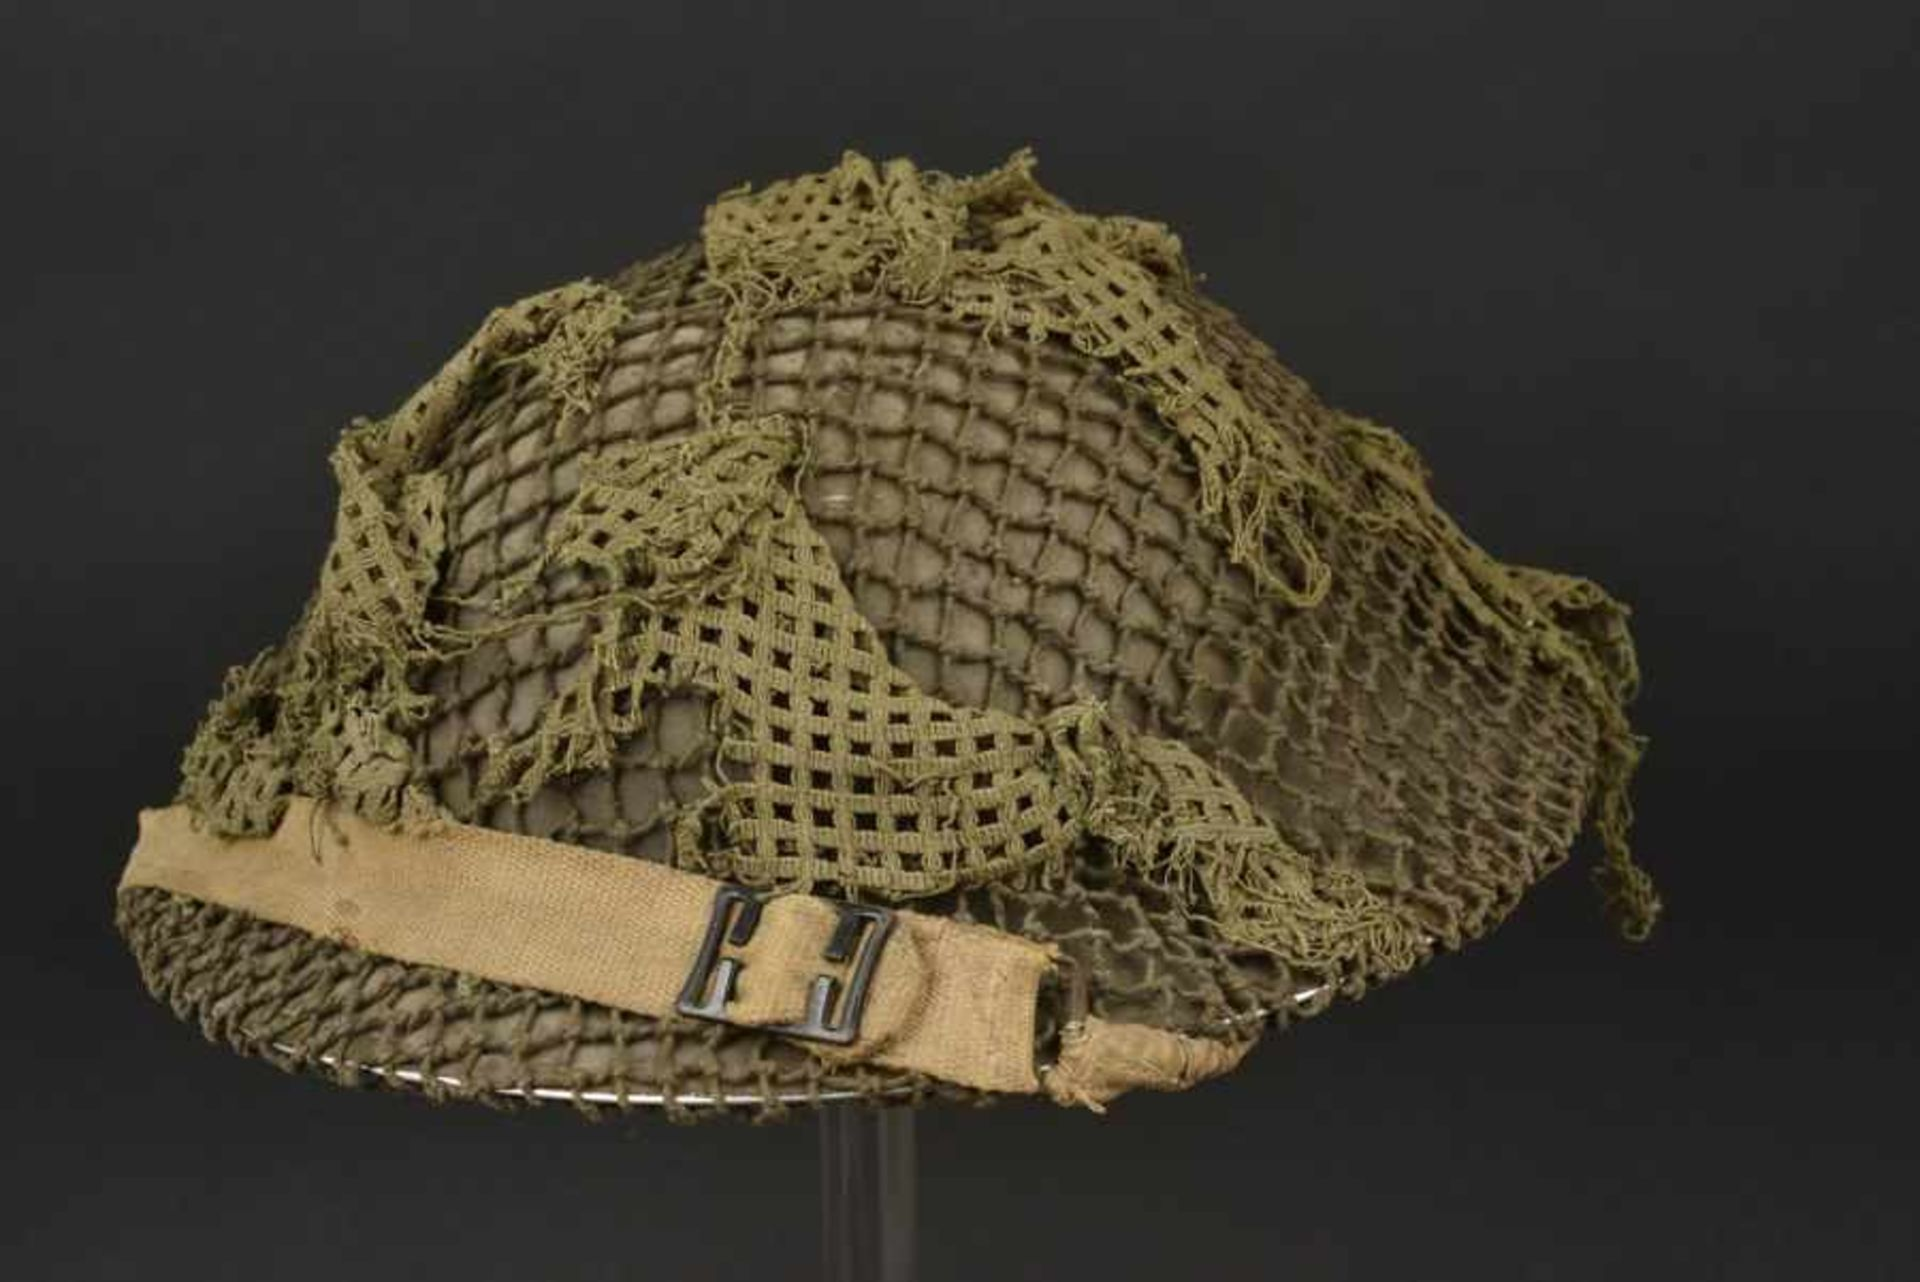 Casque canadien avec filet de camouflage monté d'origine Canadian helmet bearing its original